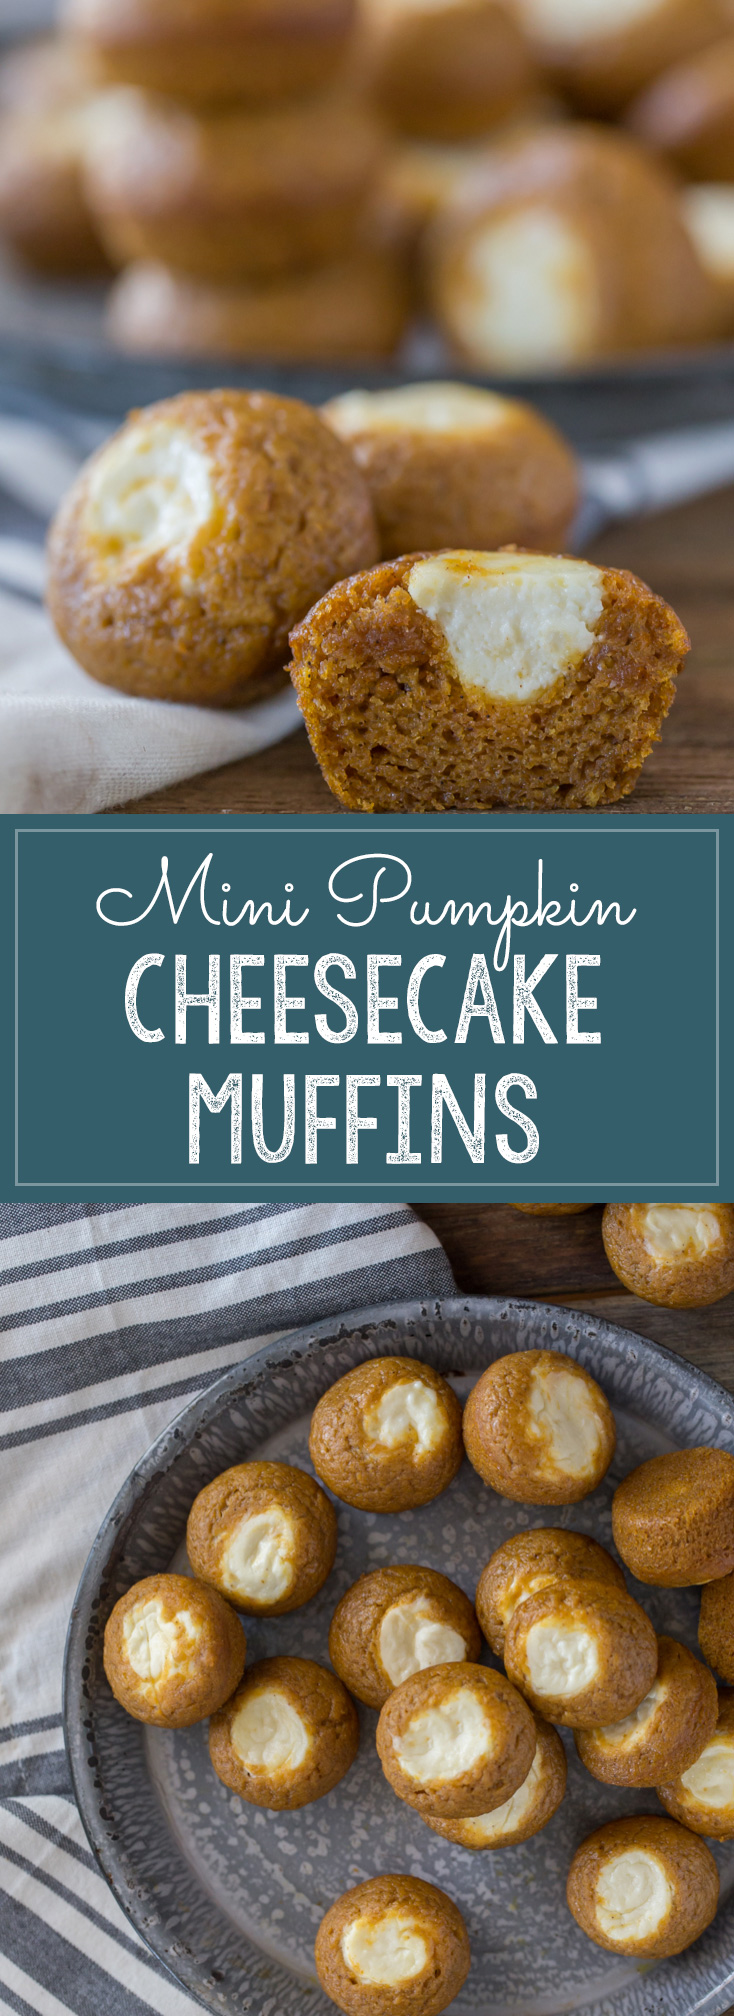 Super pop-able, bite sized pumpkin muffins with a creamy cheesecake center.